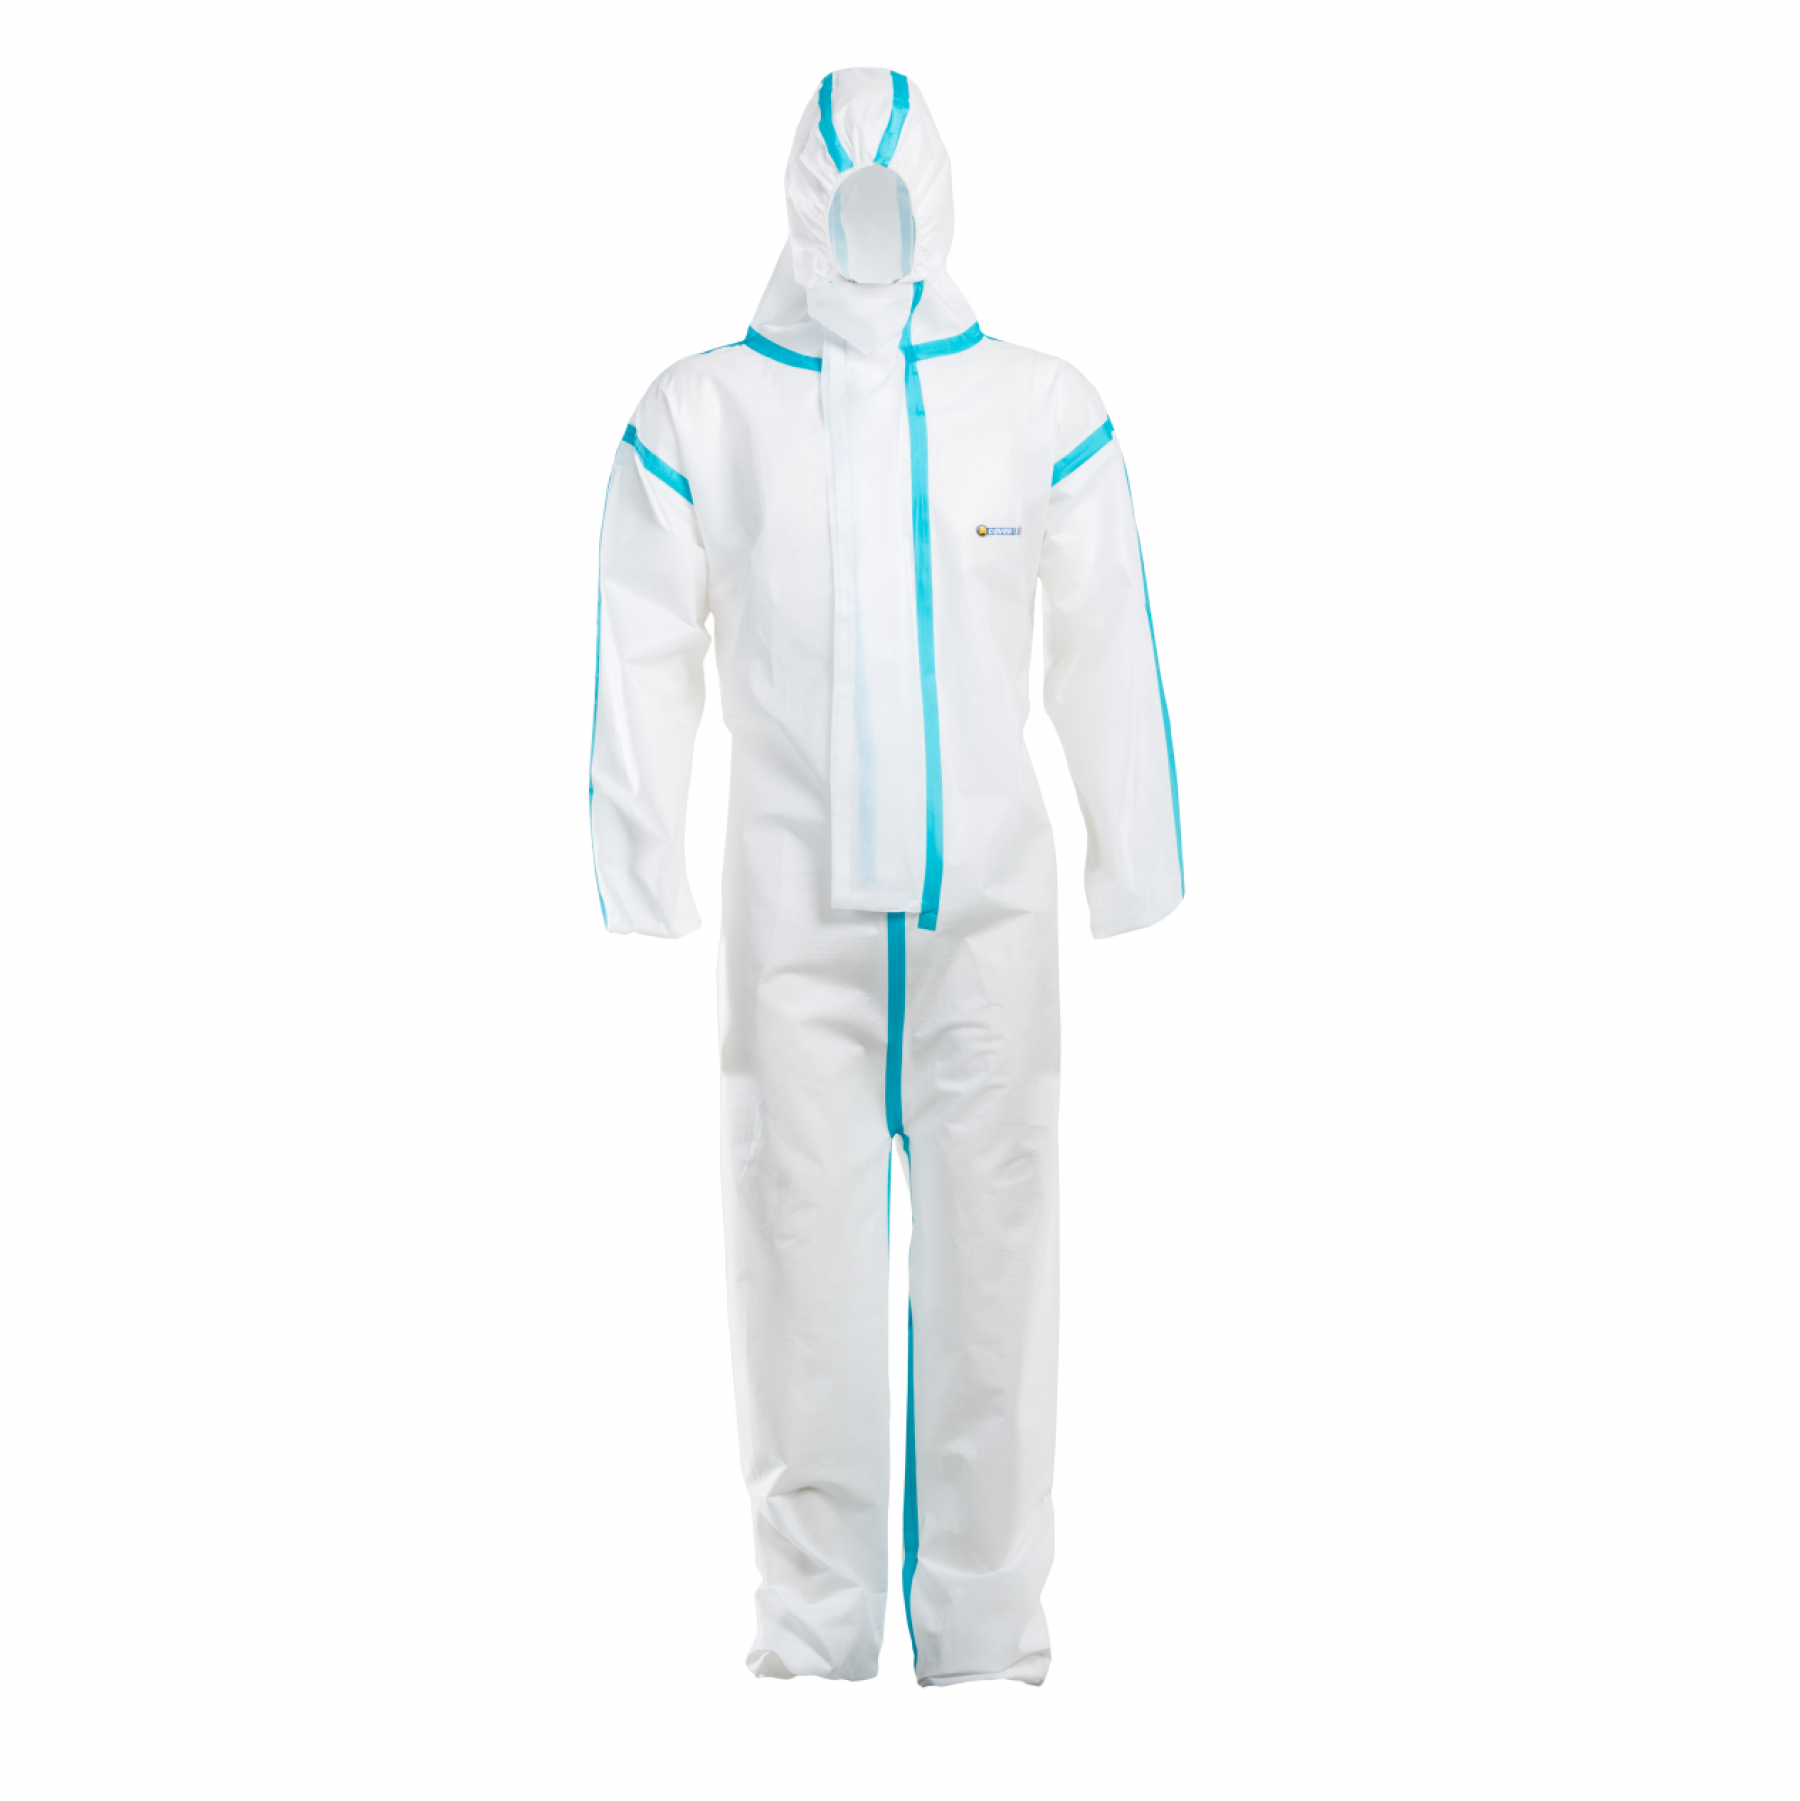 Coverstar Super Seal  White Disposable Suit, Size 3xl